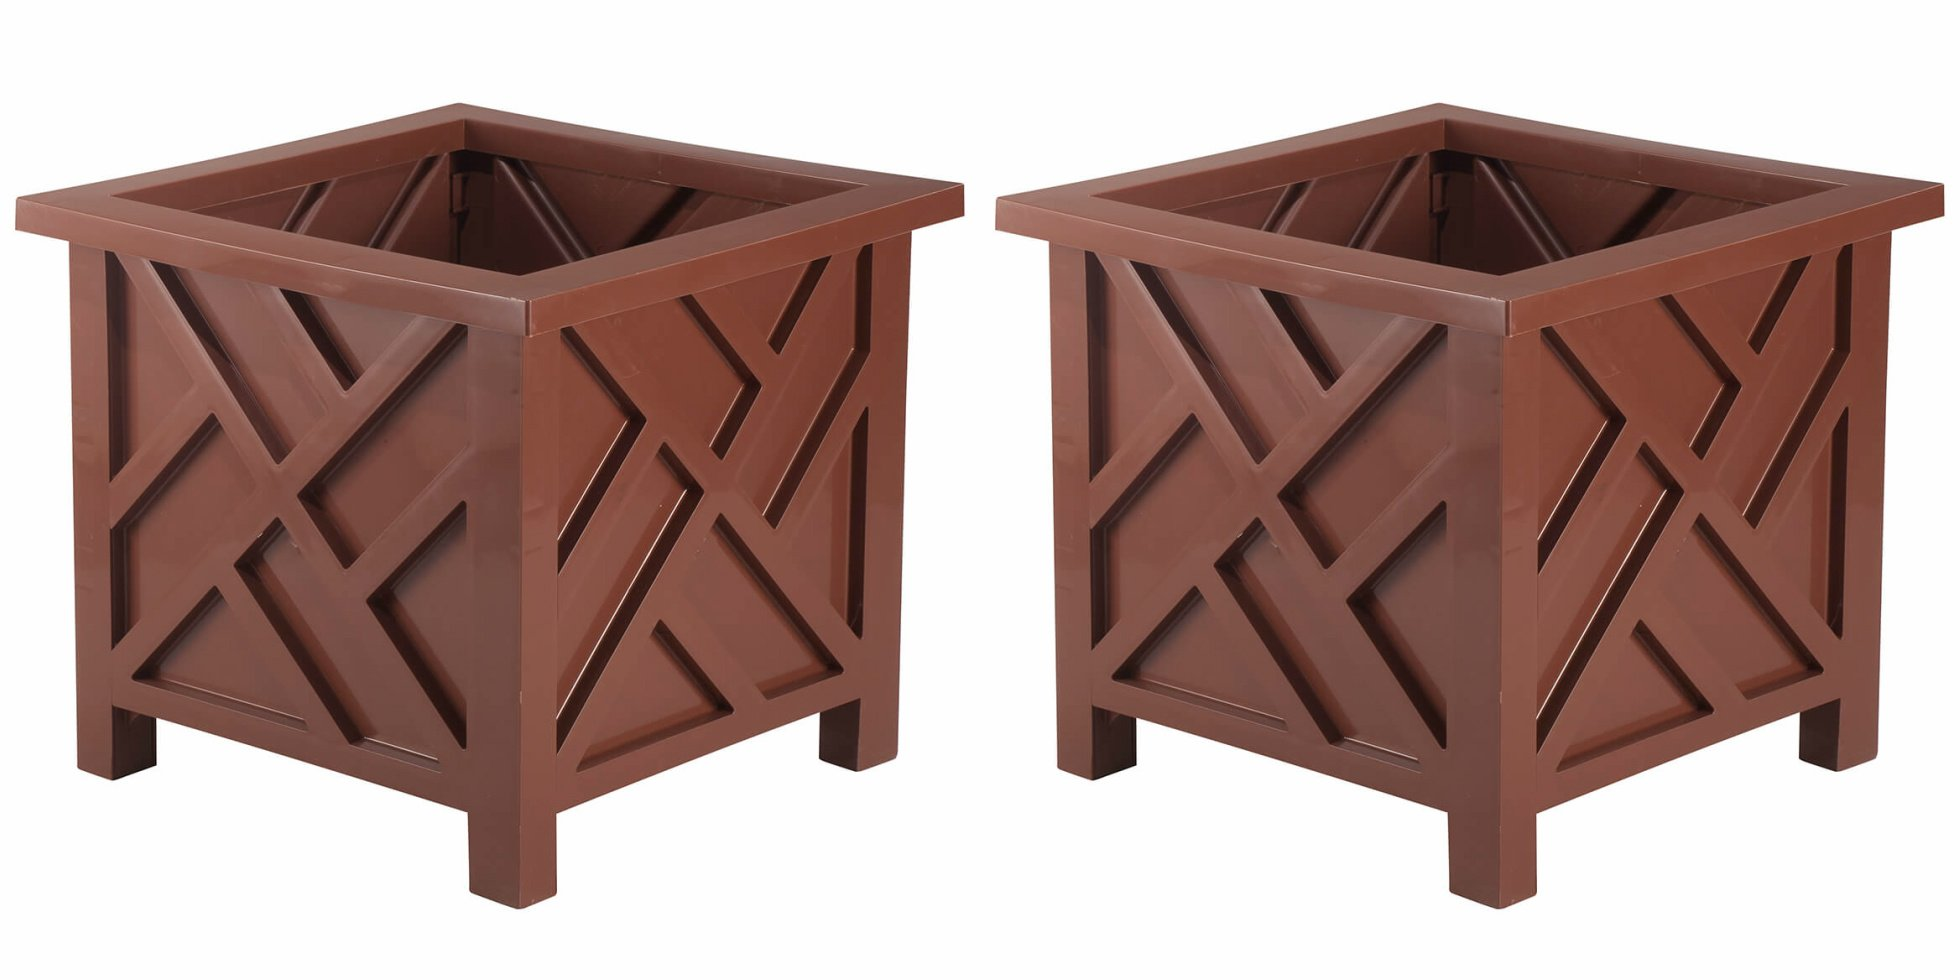 Classic Outdoor Set of 2 - Chippendale Flower Pot Planters - 15'' Square x 13'' H - Choose Color (brown)